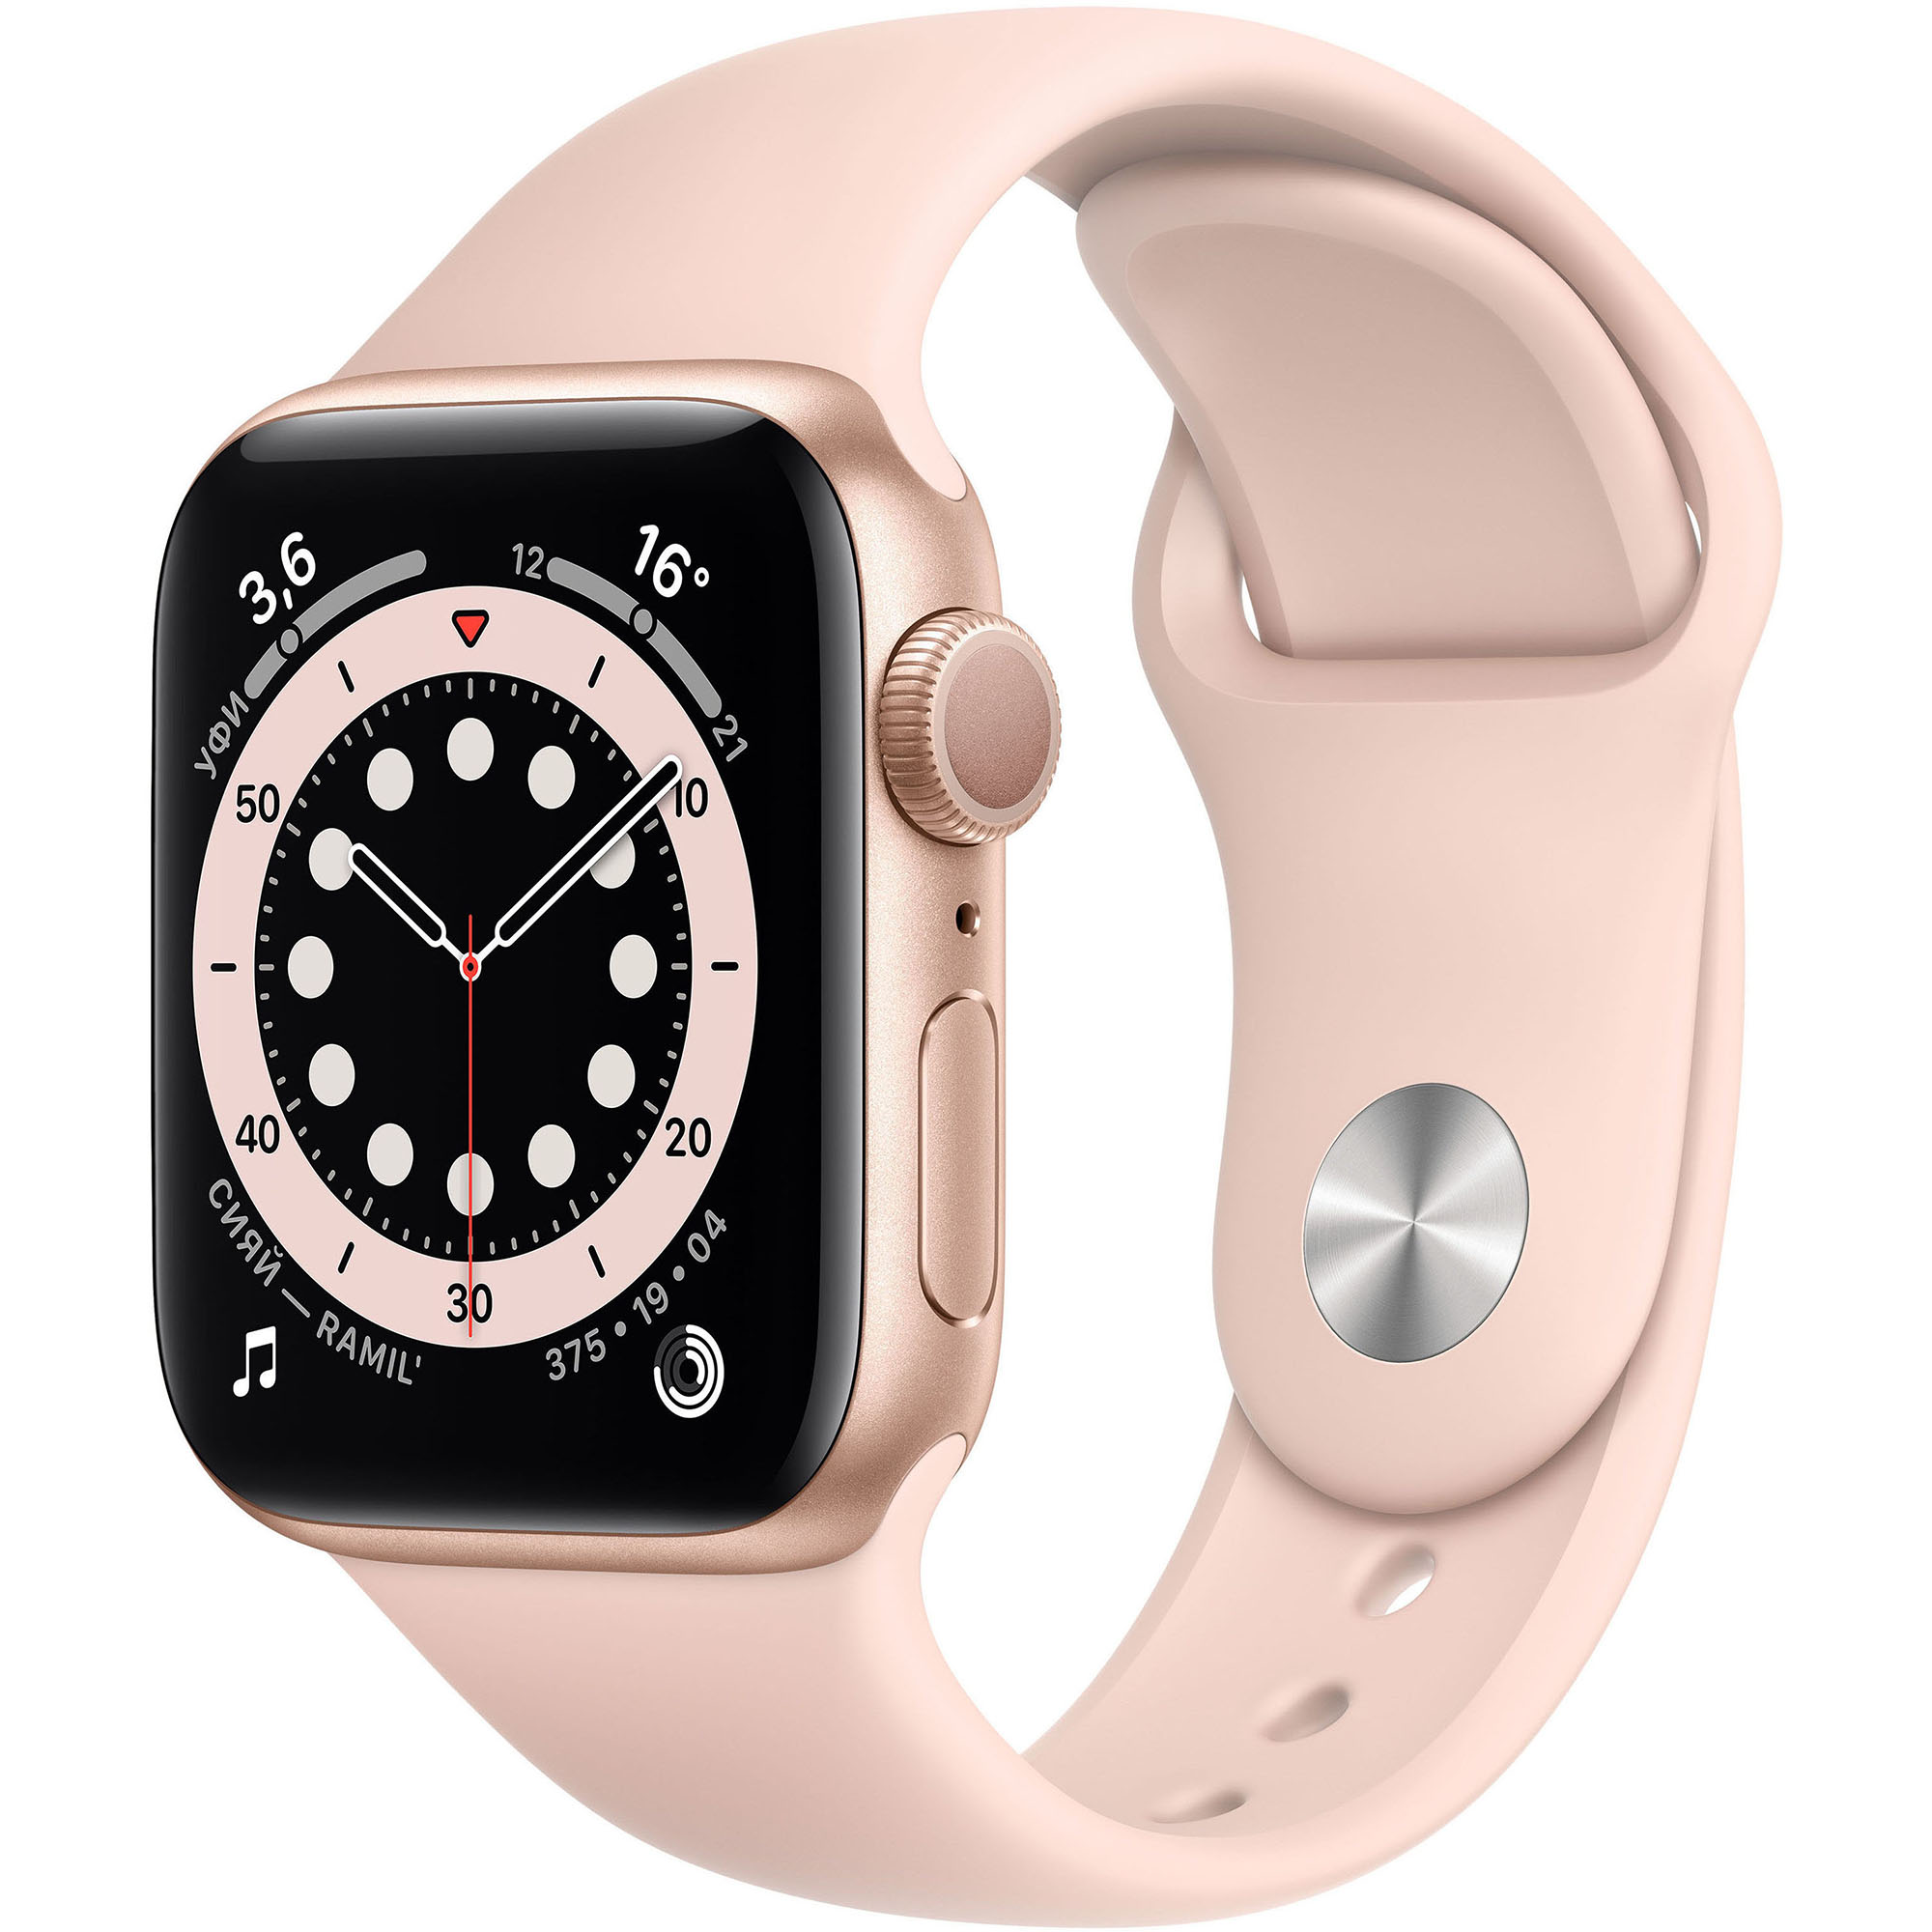 Фото - Смарт-часы Apple Watch Series 6 40 мм золотой MG123RU/A ellen m weinstein mom and dad just shut up and watch the game 32 suggestions for sideline parents from an experienced sports mom